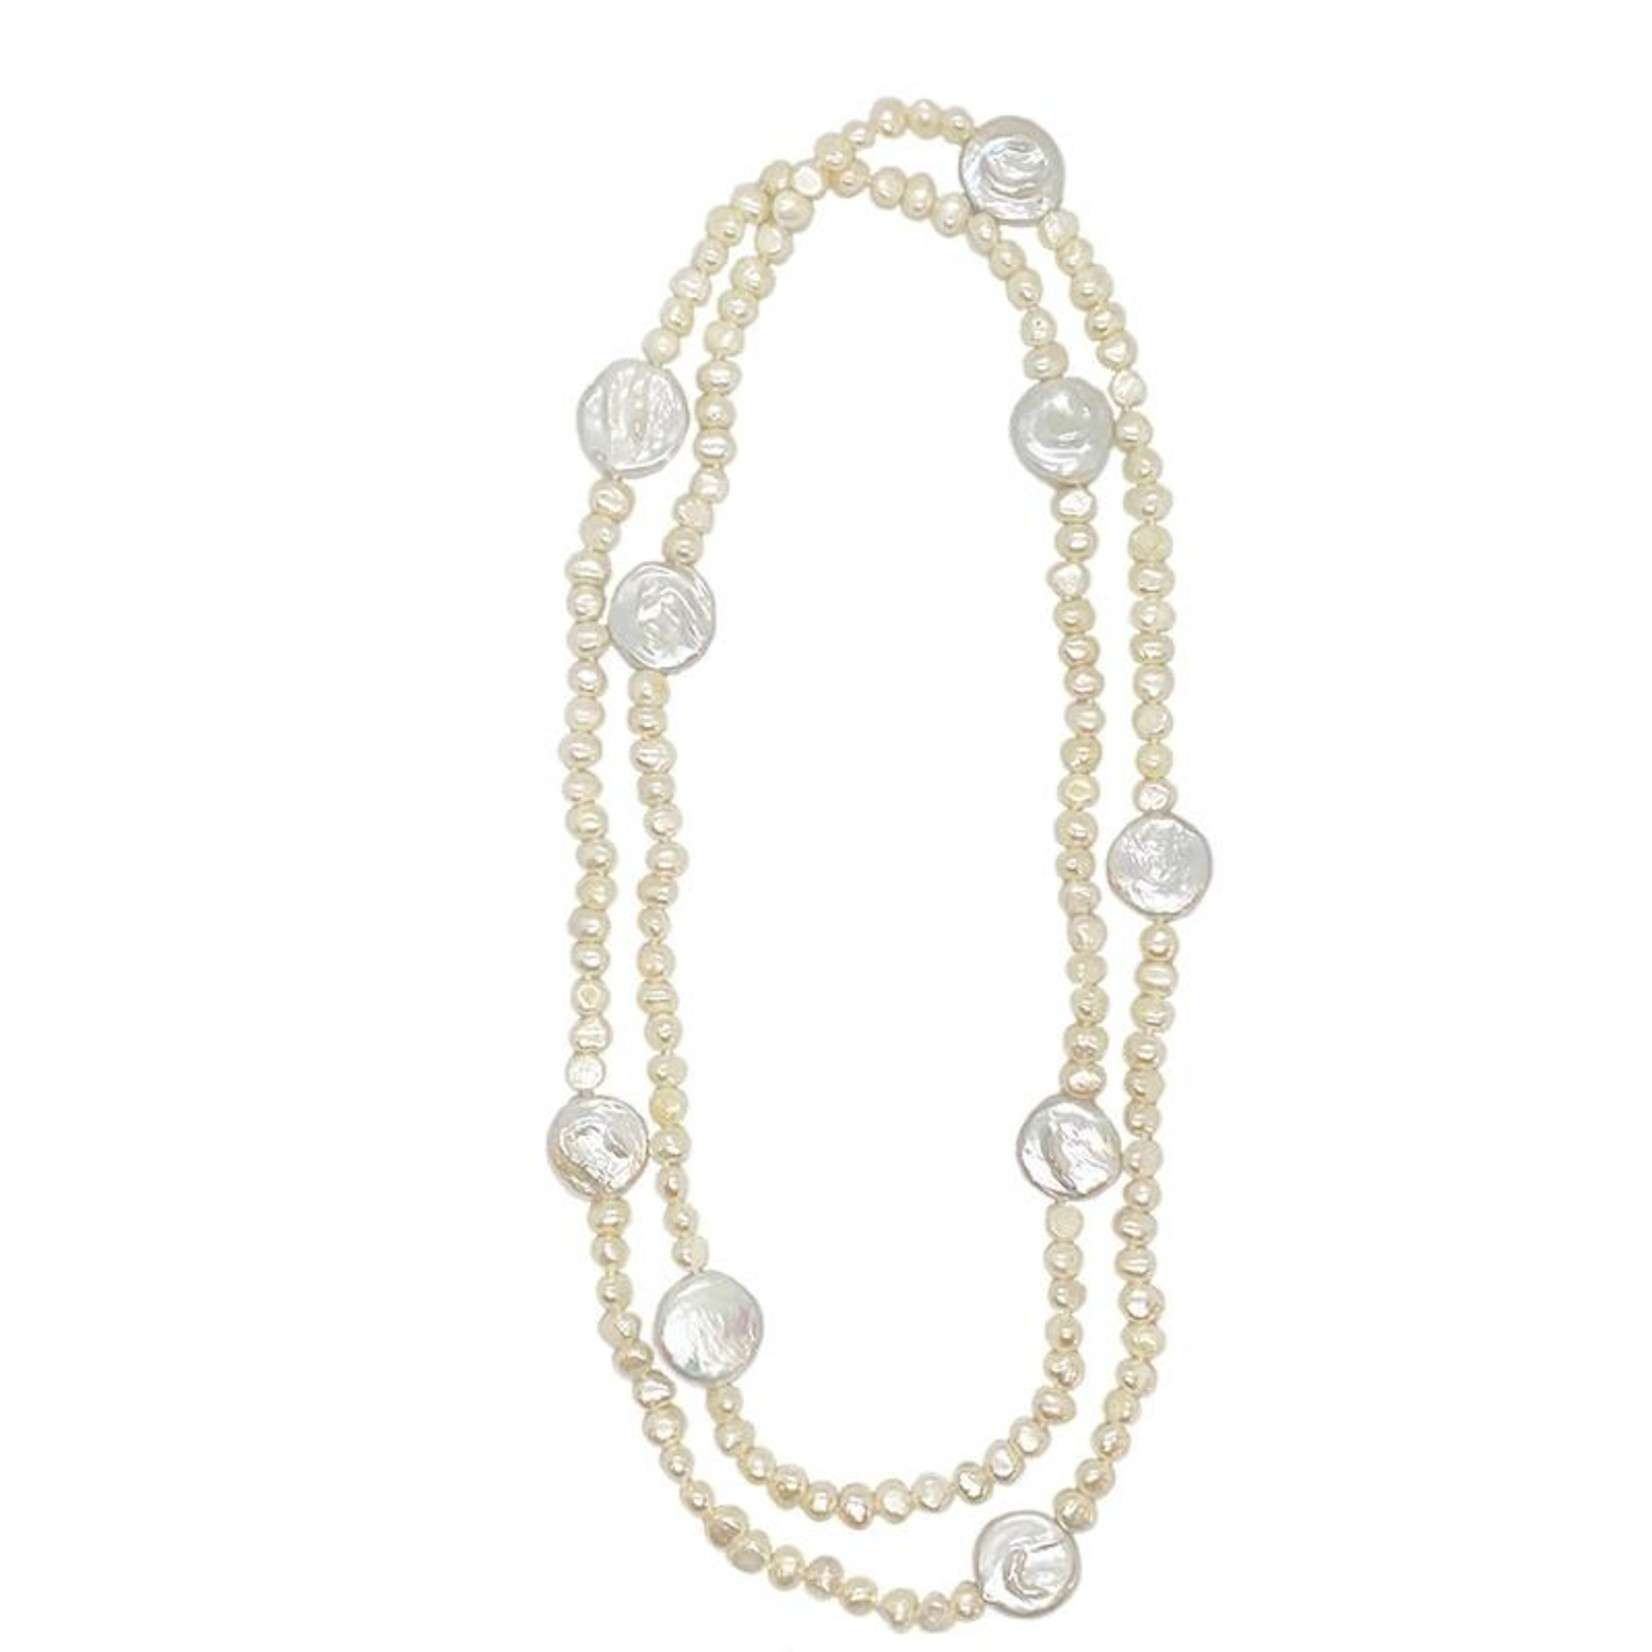 Girl With a Pearl Long Necklace